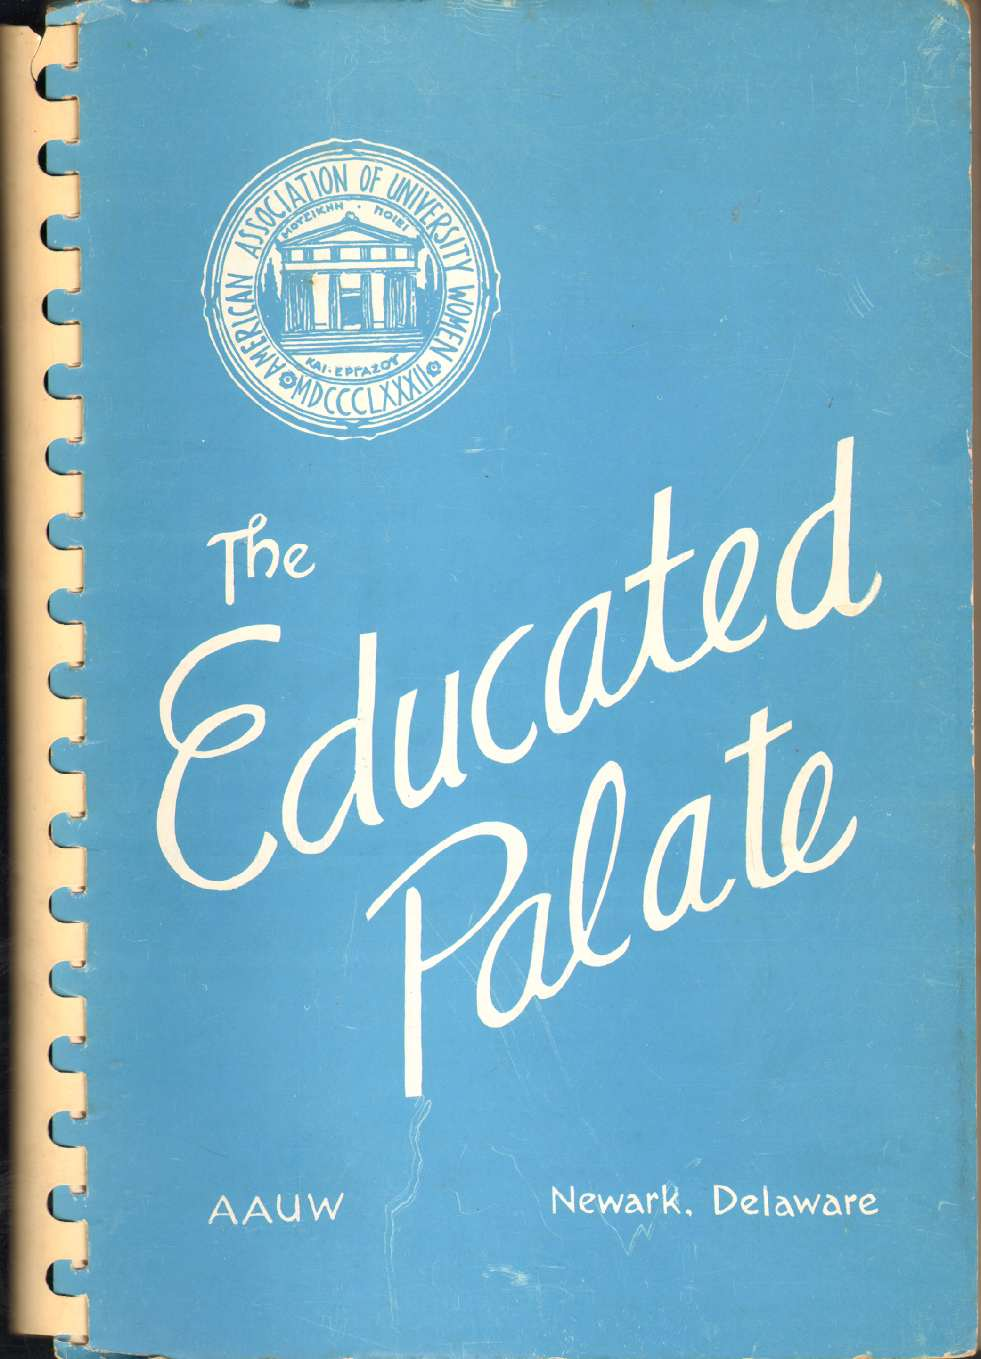 THE EDUCATED PALATE A Book of Favorite Recipes Compiled by American Association of University Women Newark Branch, AAUW